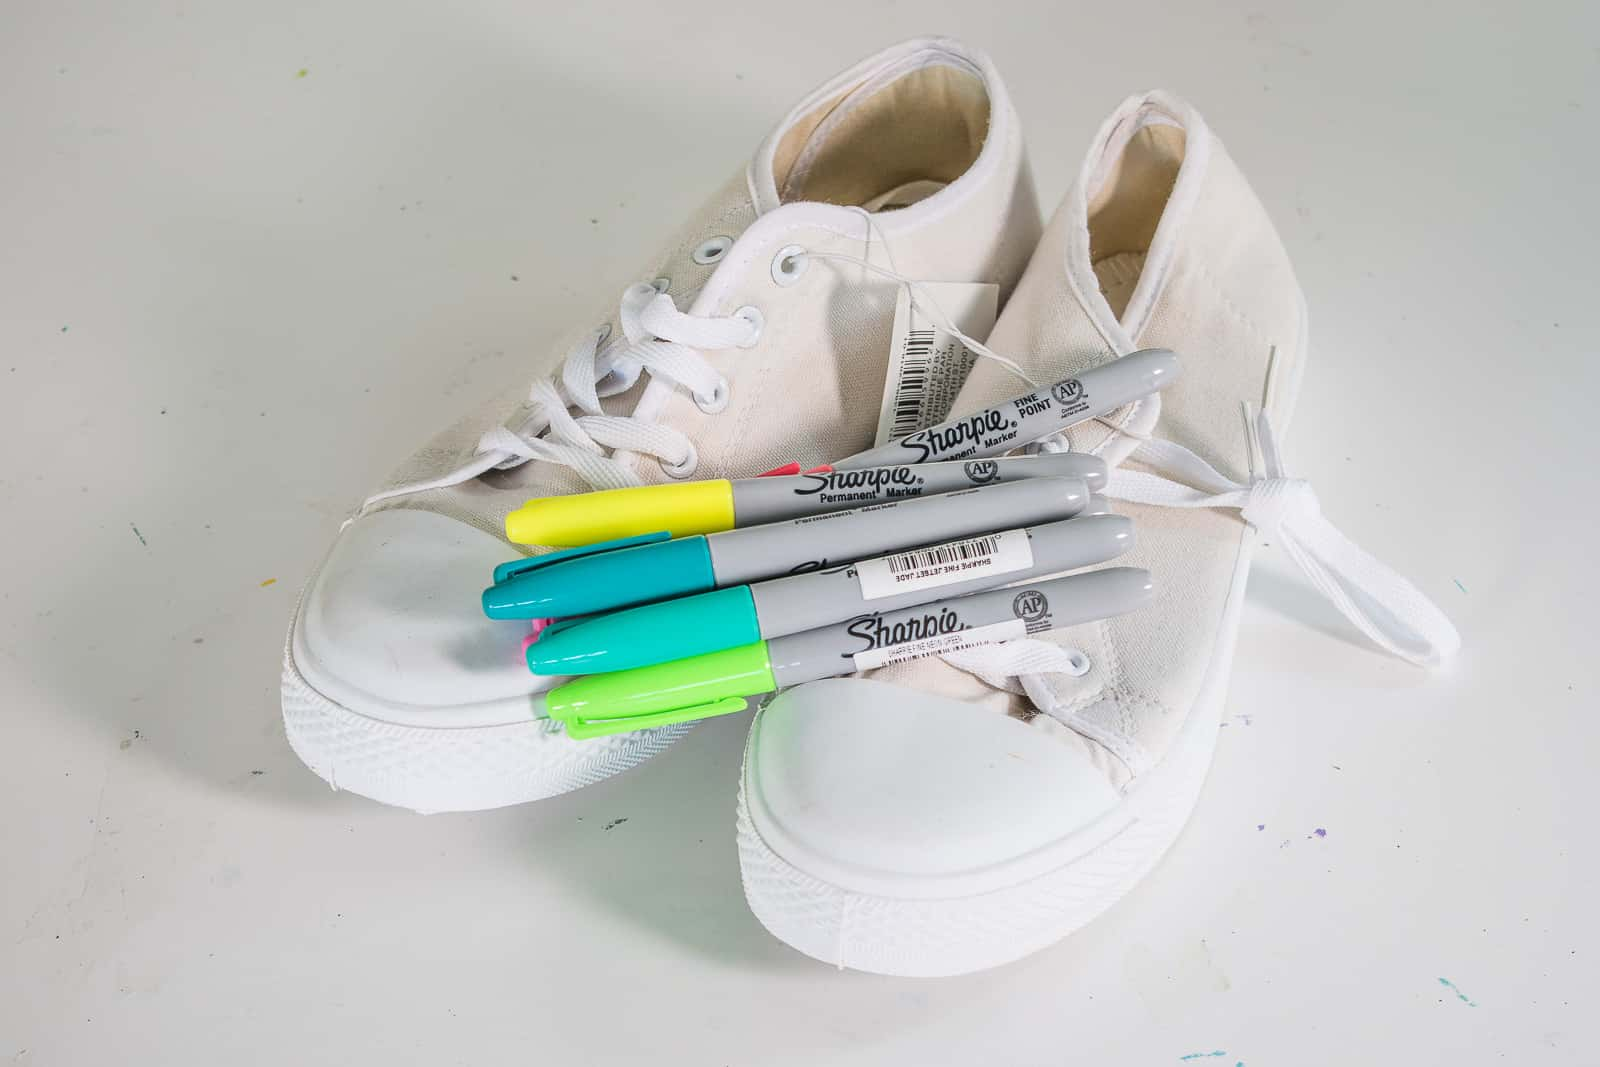 canvas shoes and sharpie markers